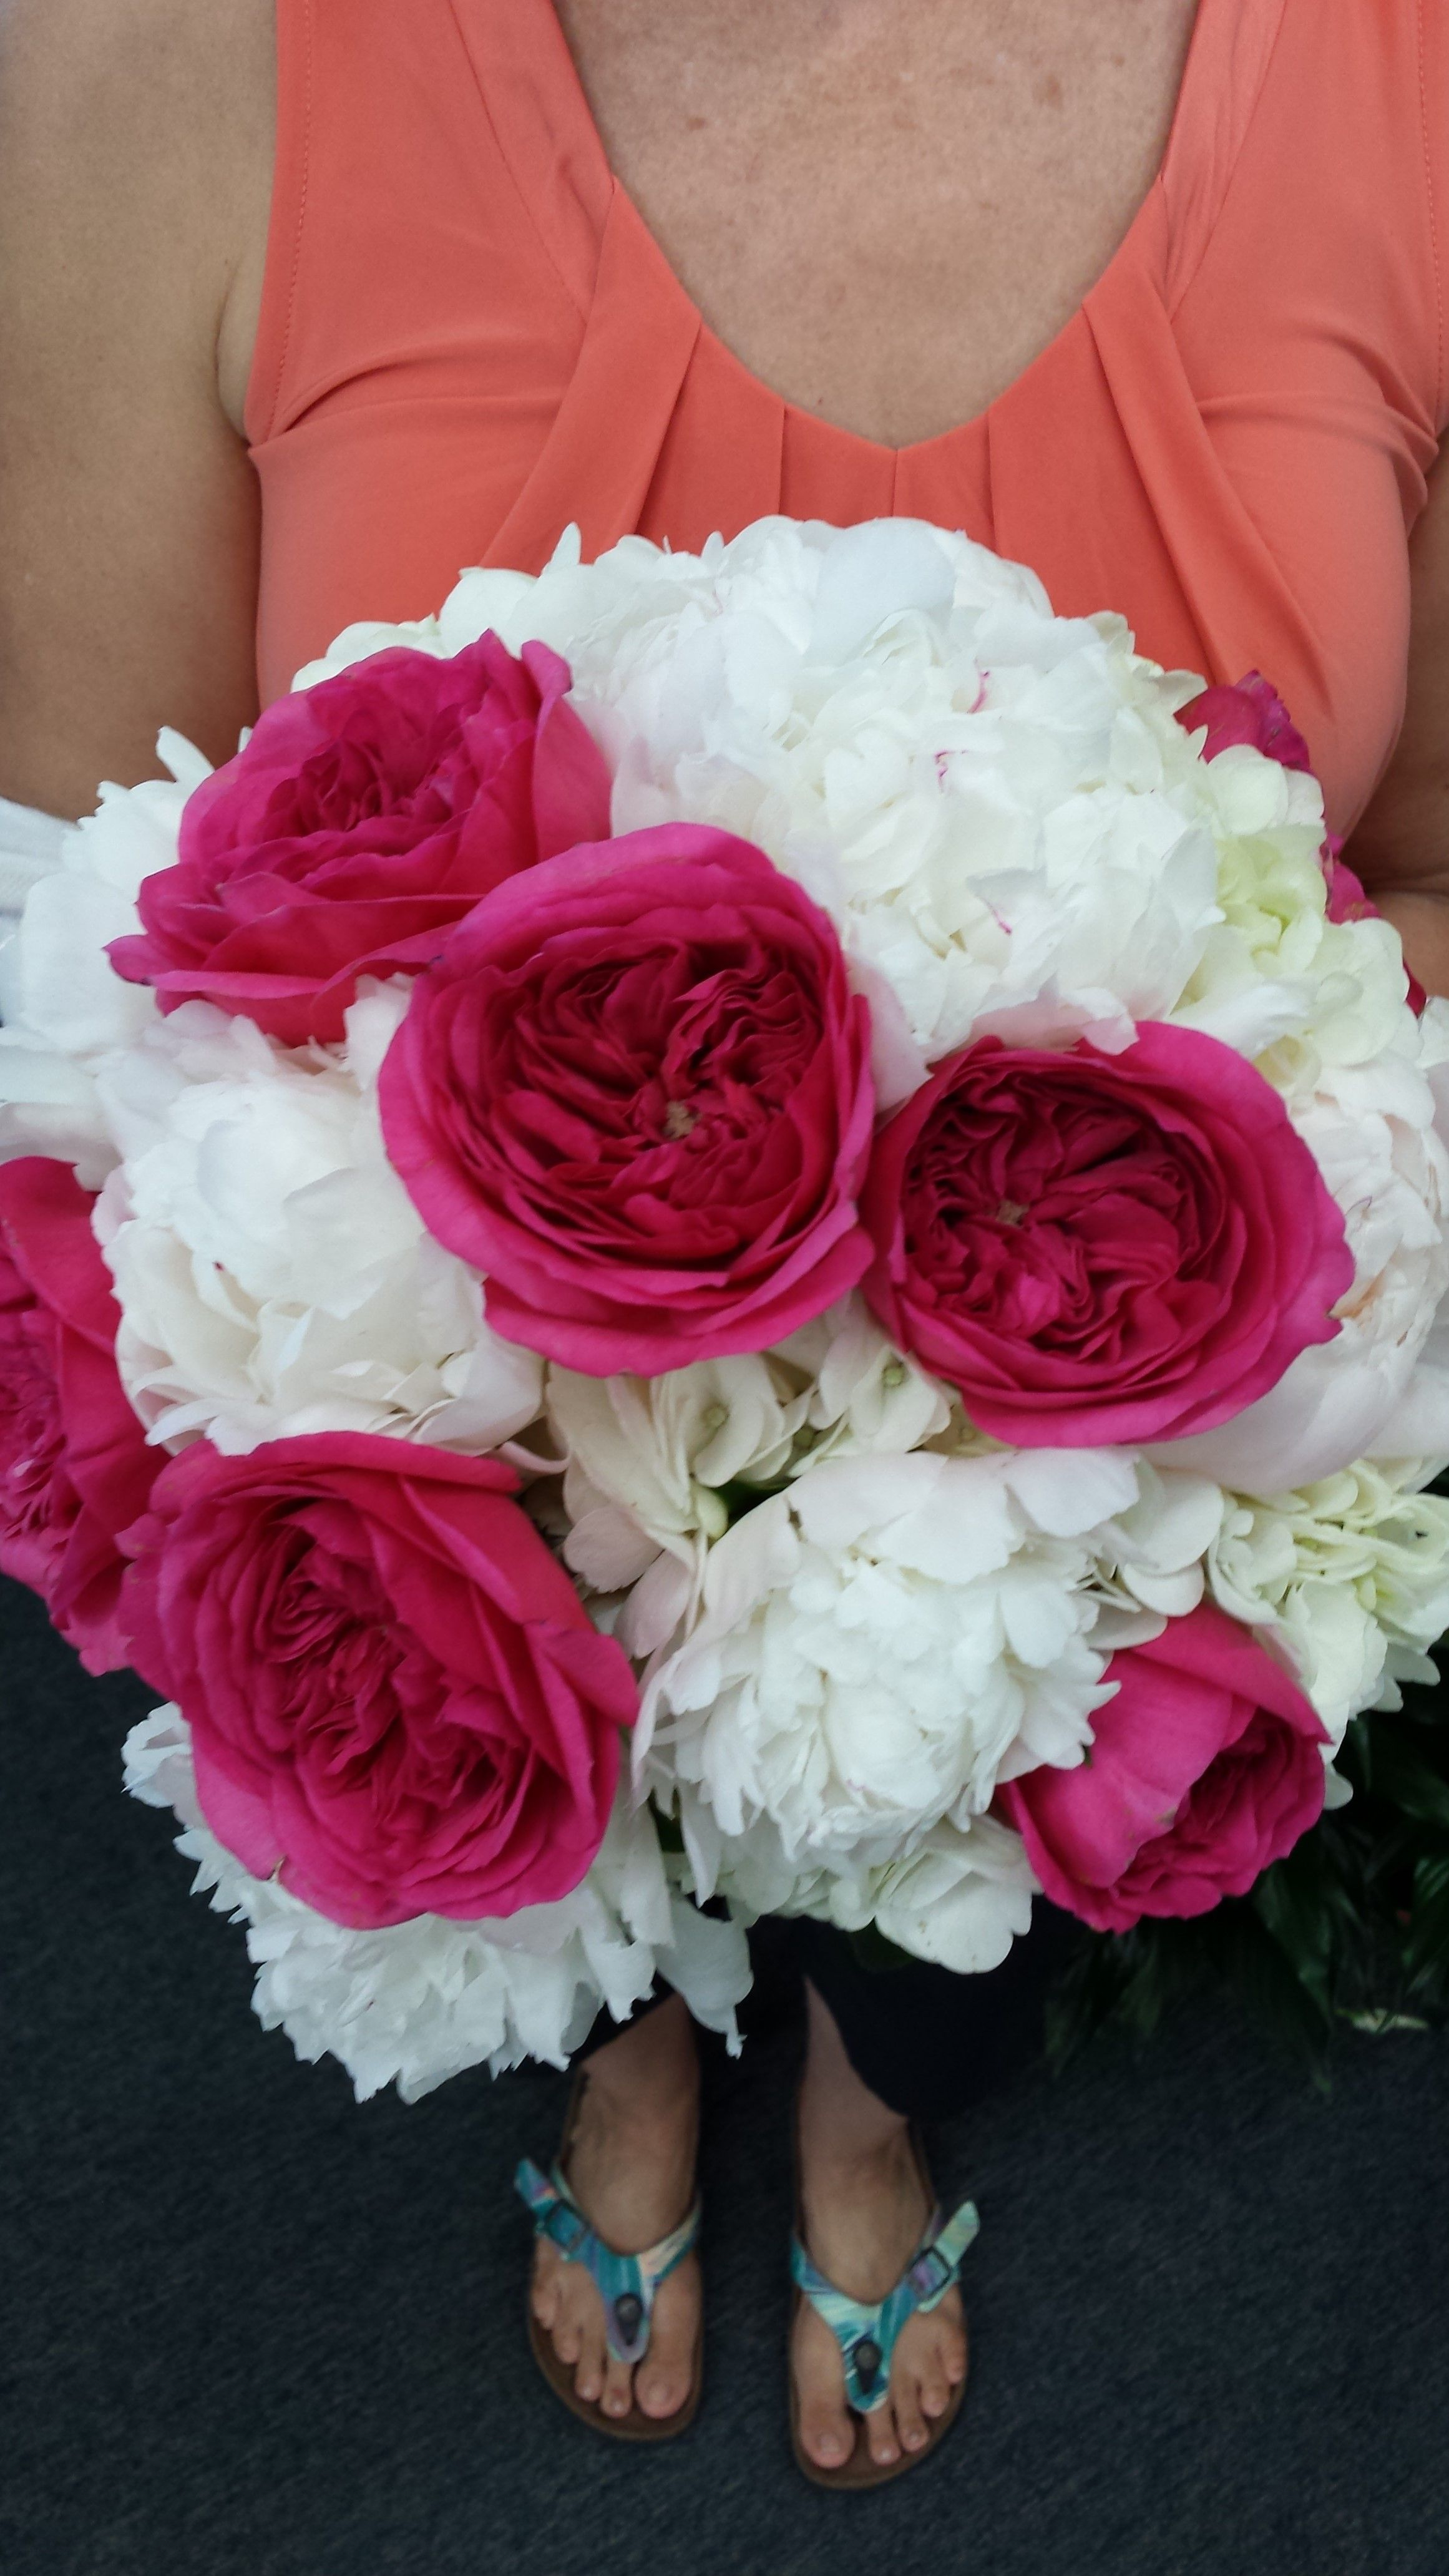 Pink Garden Rose And Hydrangea Bouquet bridal bouquet designed with white hydrangea, white peony and hot